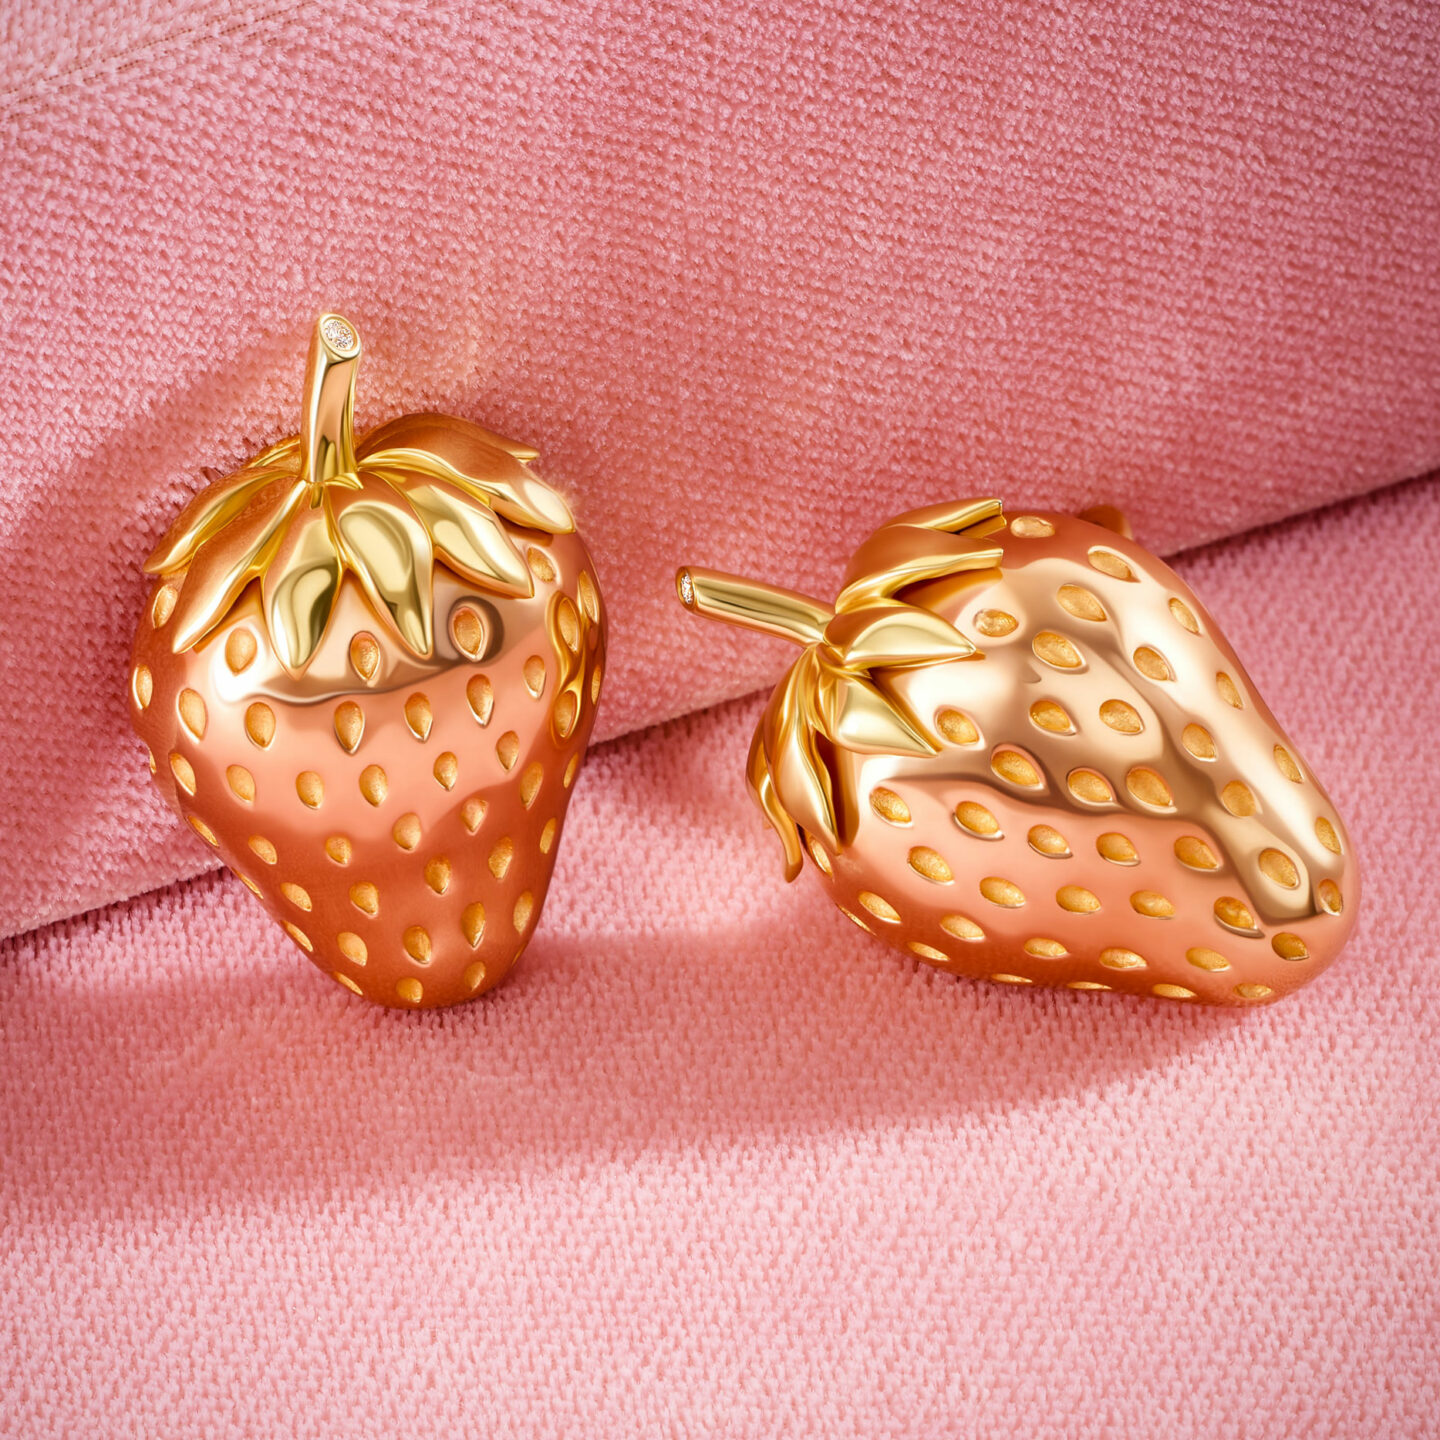 mish_products_earrings_StrawberryFruit-EC-Editorial-2